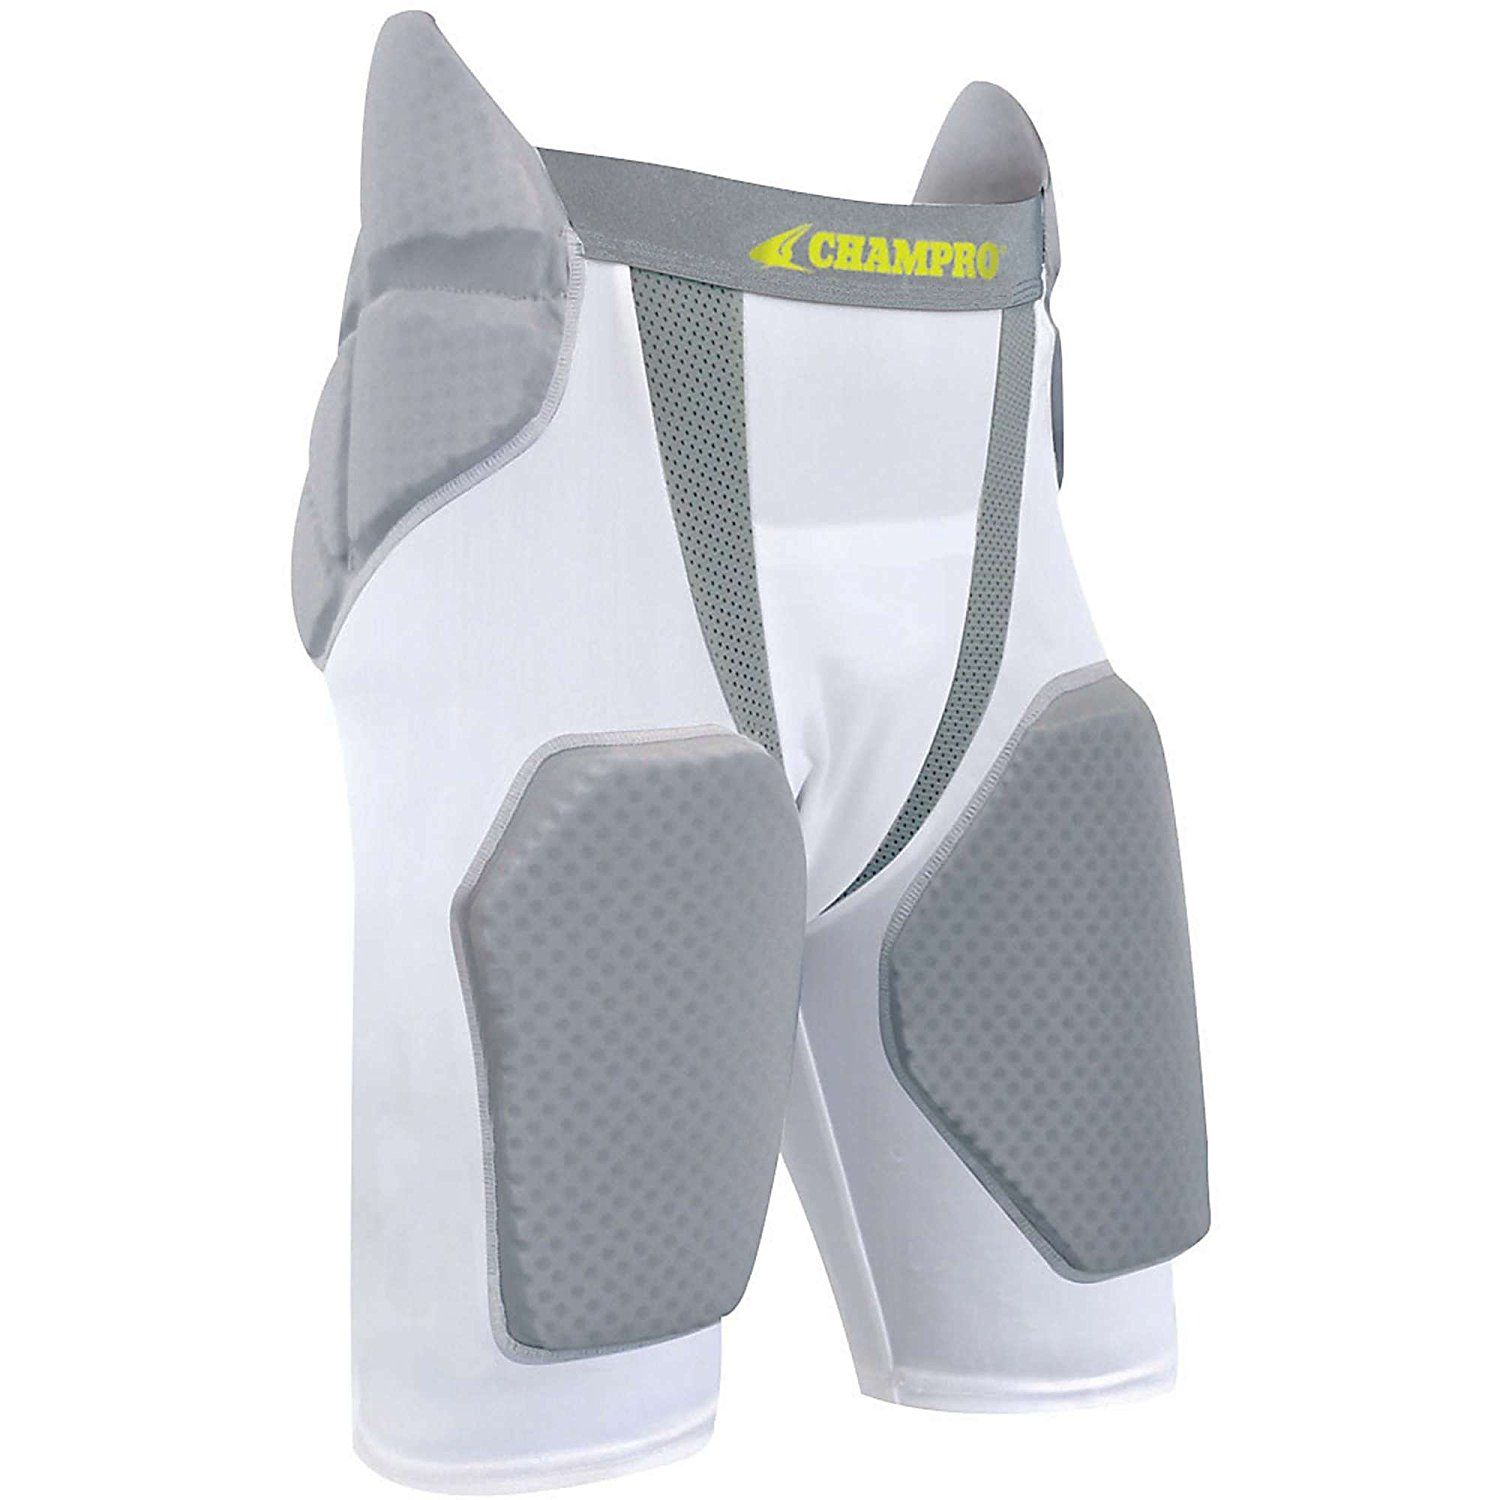 Football girdle hip pads sports lover gifts